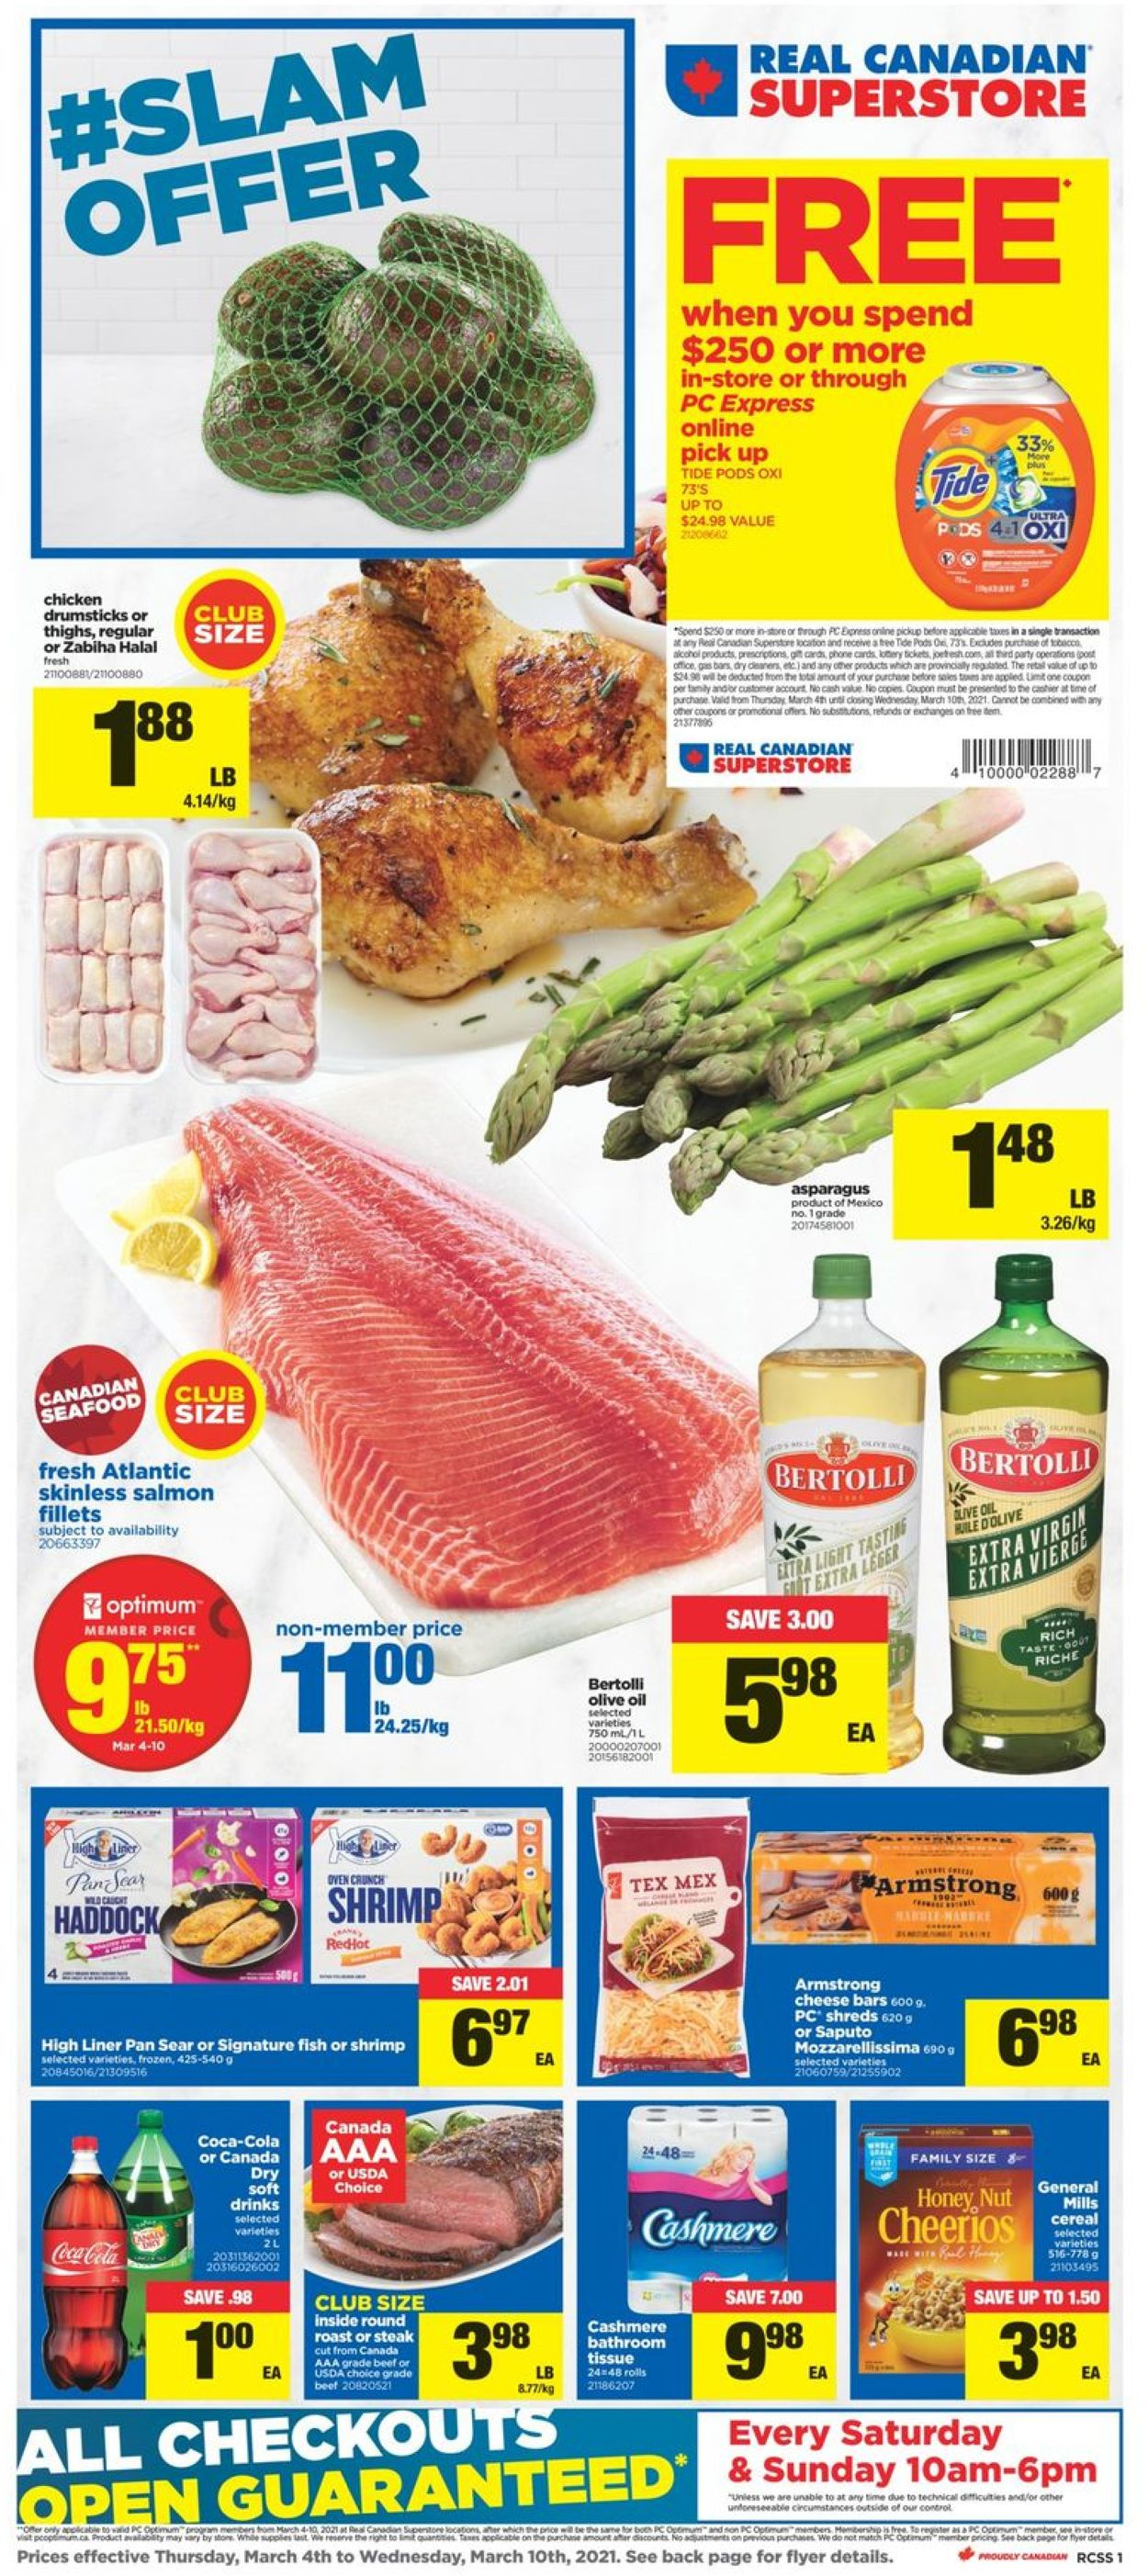 Real Canadian Superstore Flyer - 03/04-03/10/2021